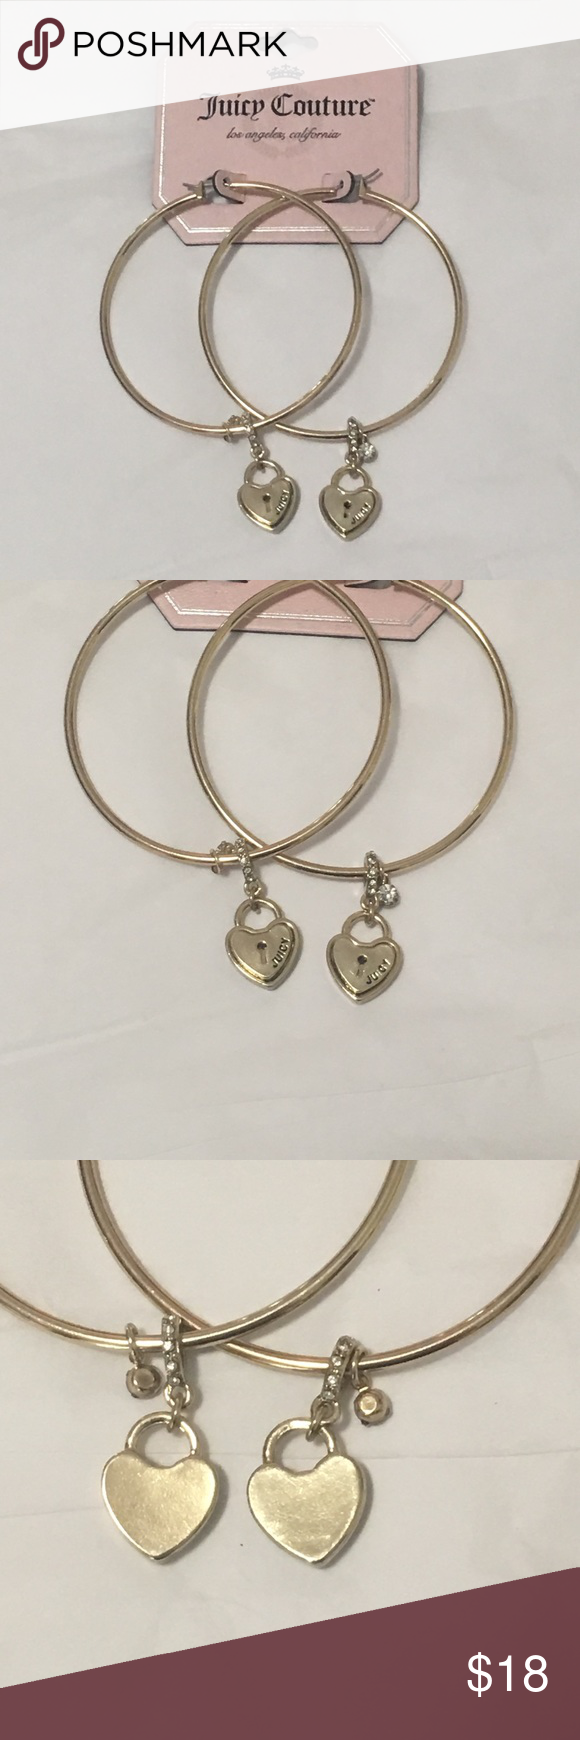 Juicy Couture Hoop Earrings Large With Cute Little Heart And Rhinestone Dangley Charms One